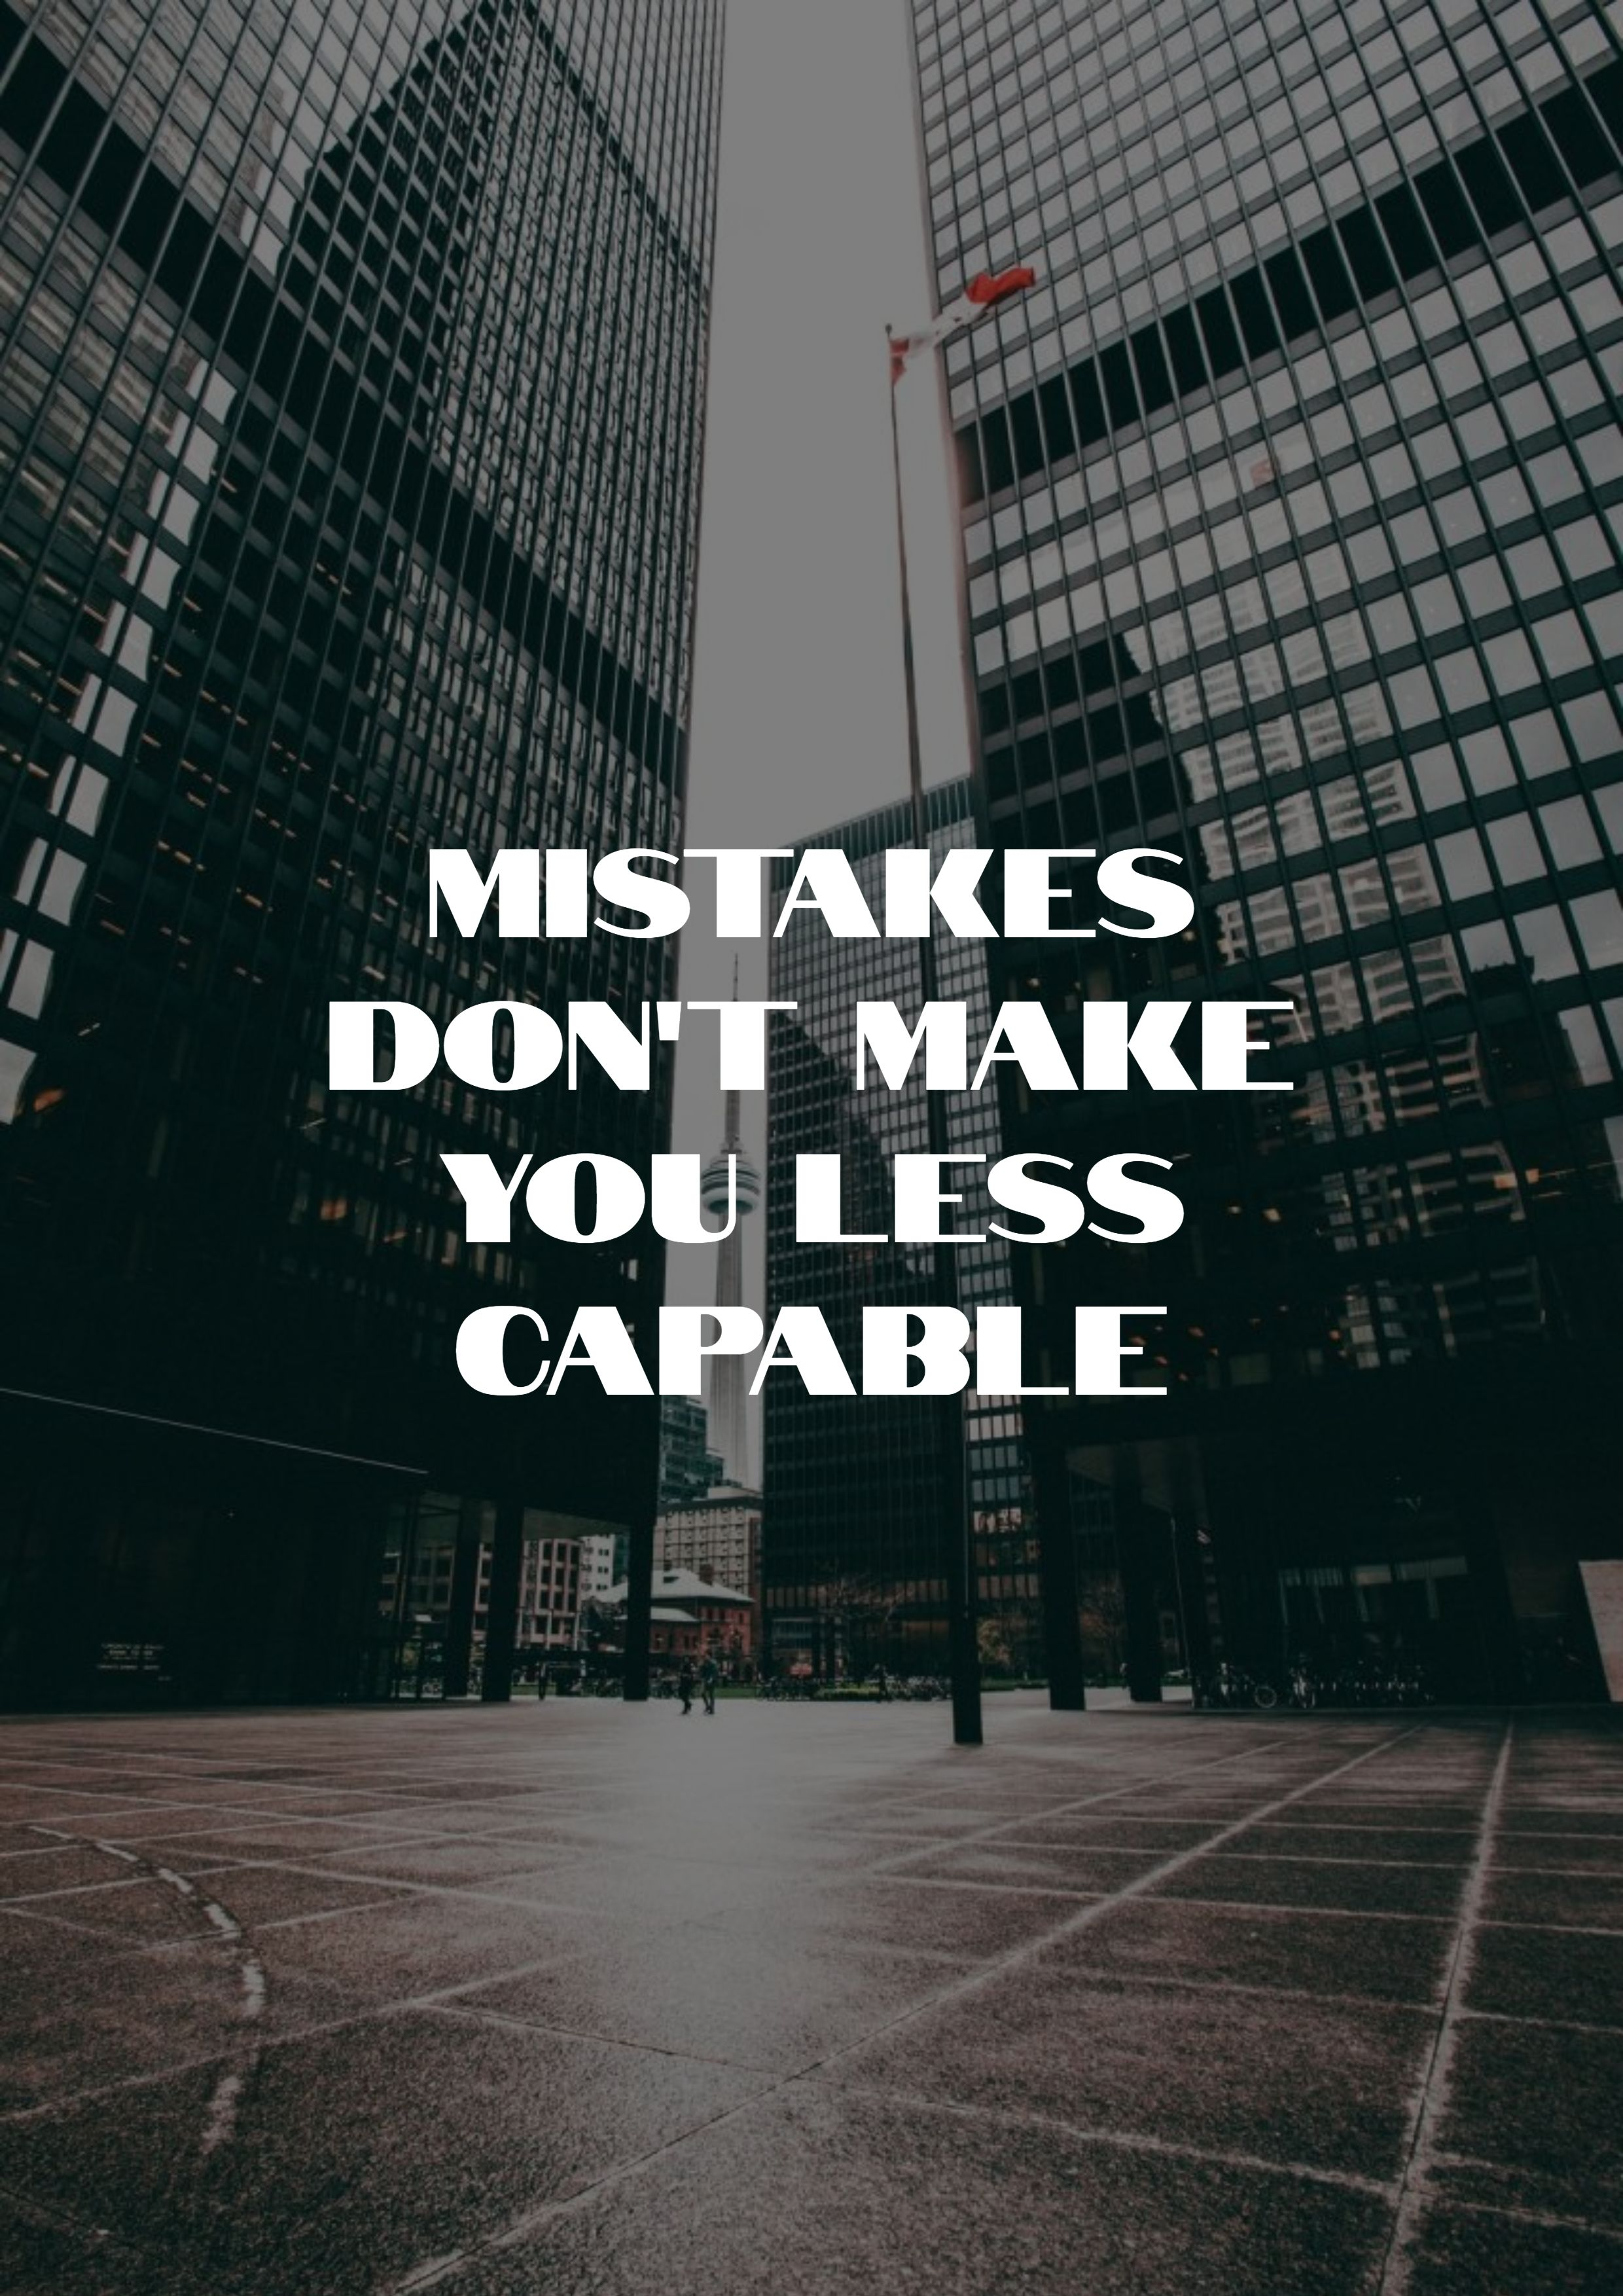 Quotes image of Mistakes don't make you less capable